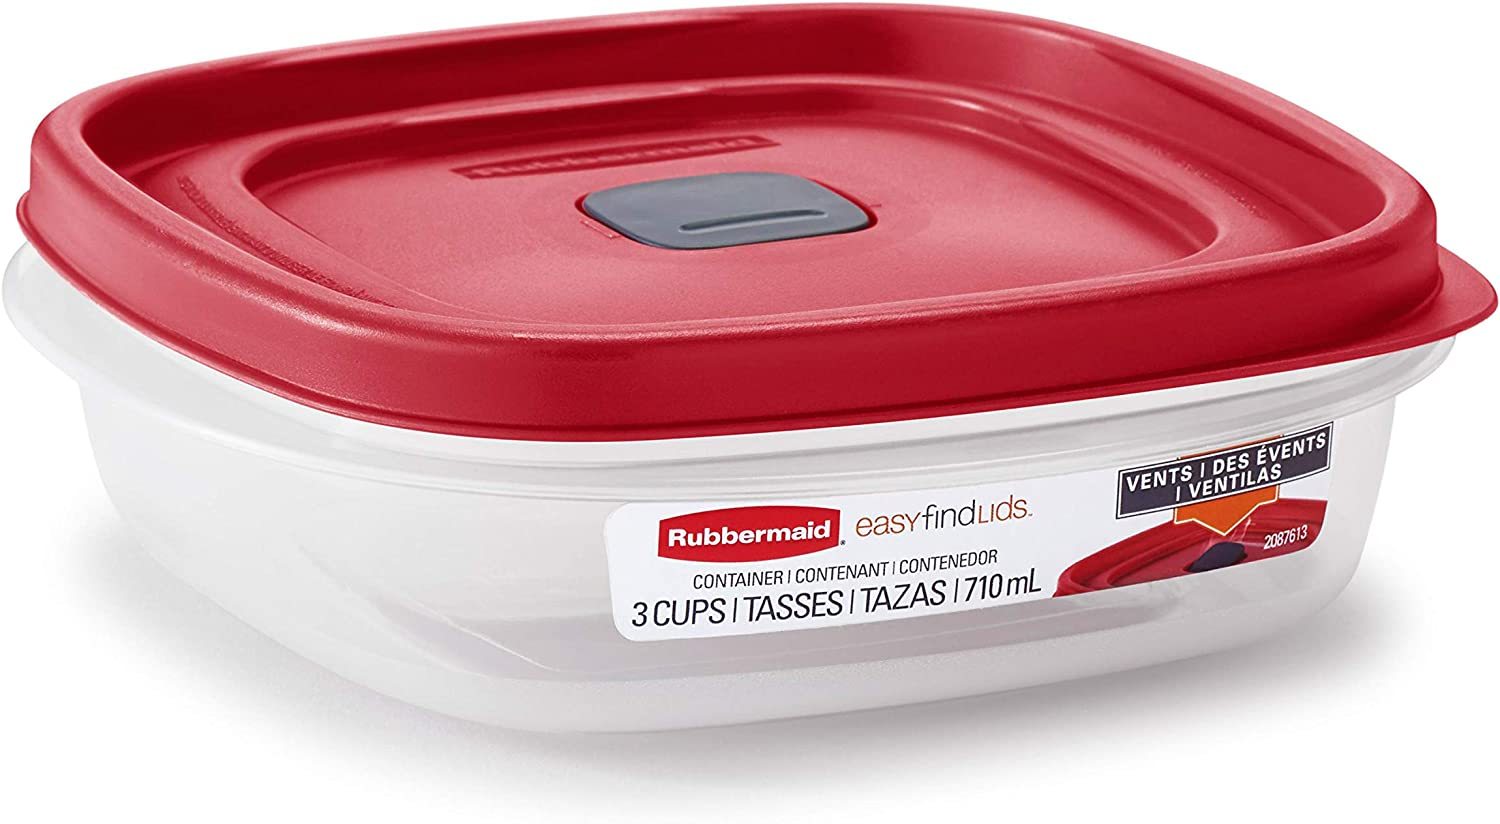 Rubbermaid Easy Find Lids 3-Cup Food Storage and Organization Container, Racer Red